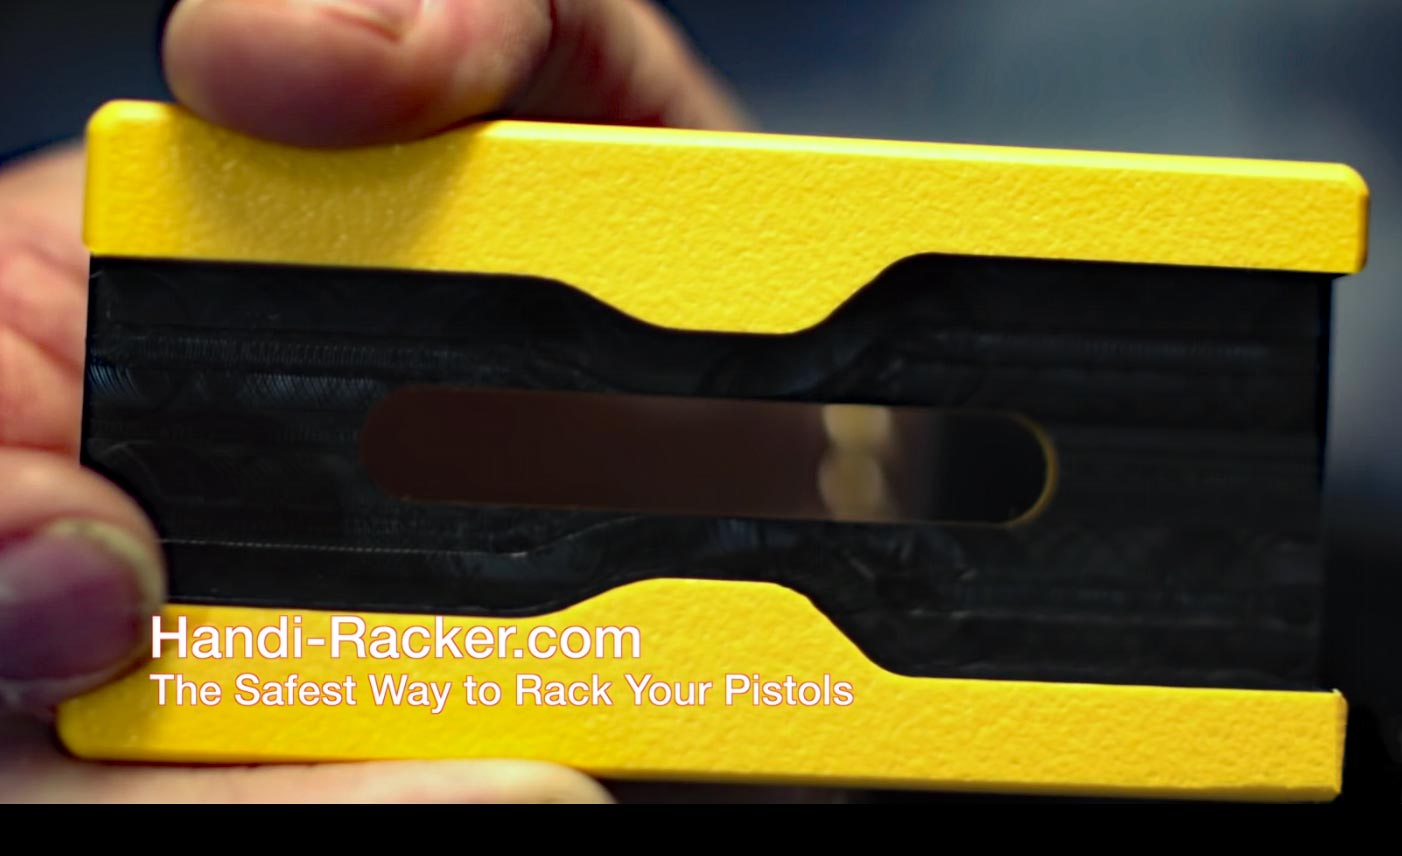 Handi-Racker 2 for large & medium pistols.